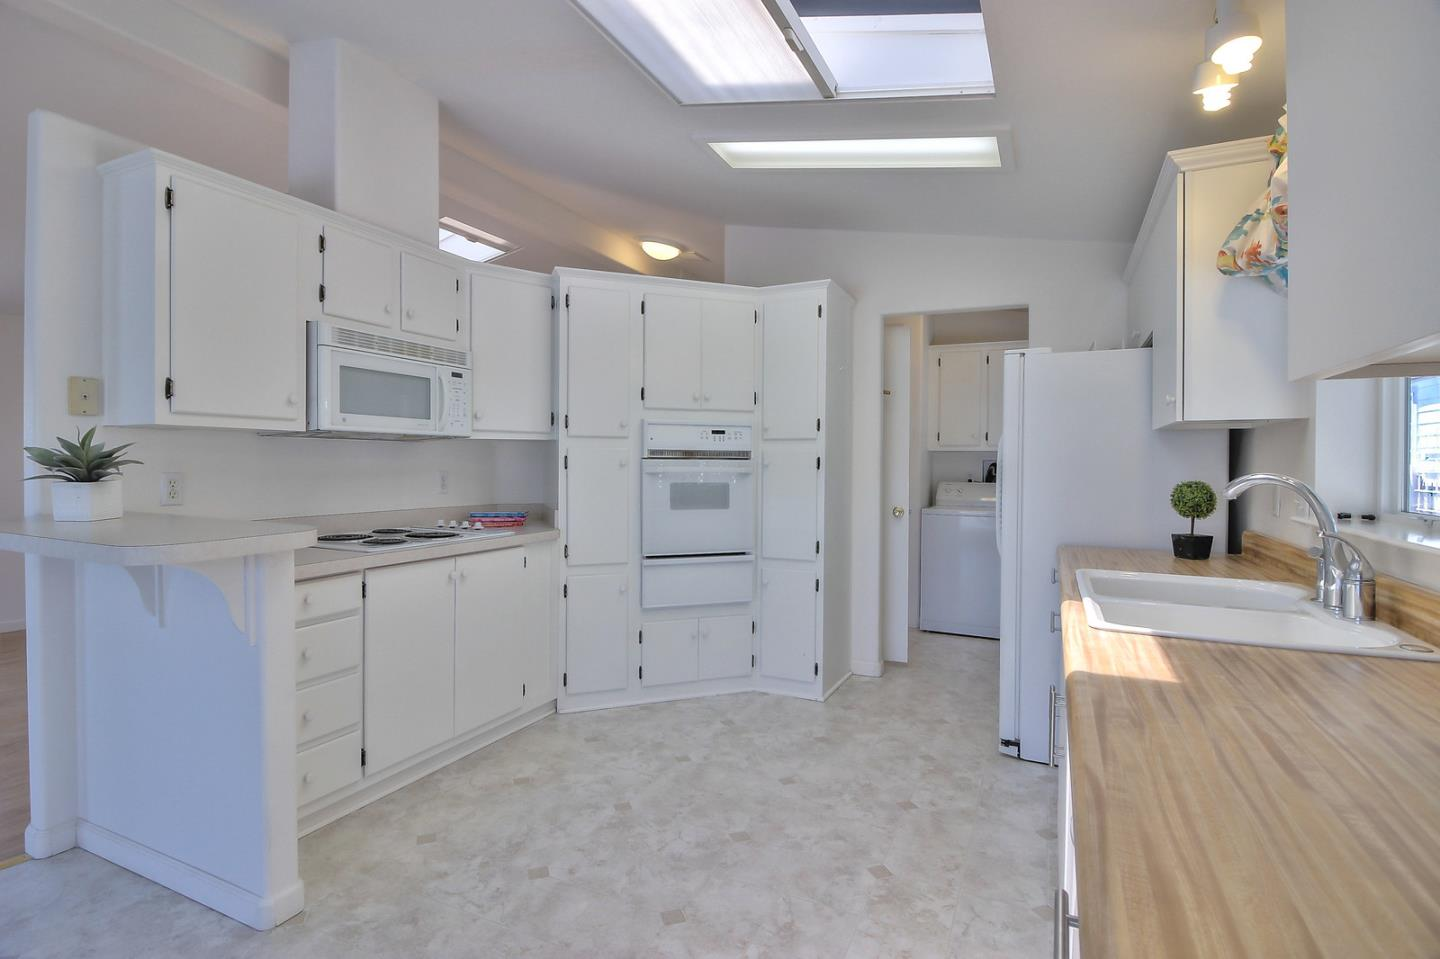 Additional photo for property listing at 2395 Delaware Avenue  Santa Cruz, カリフォルニア 95060 アメリカ合衆国